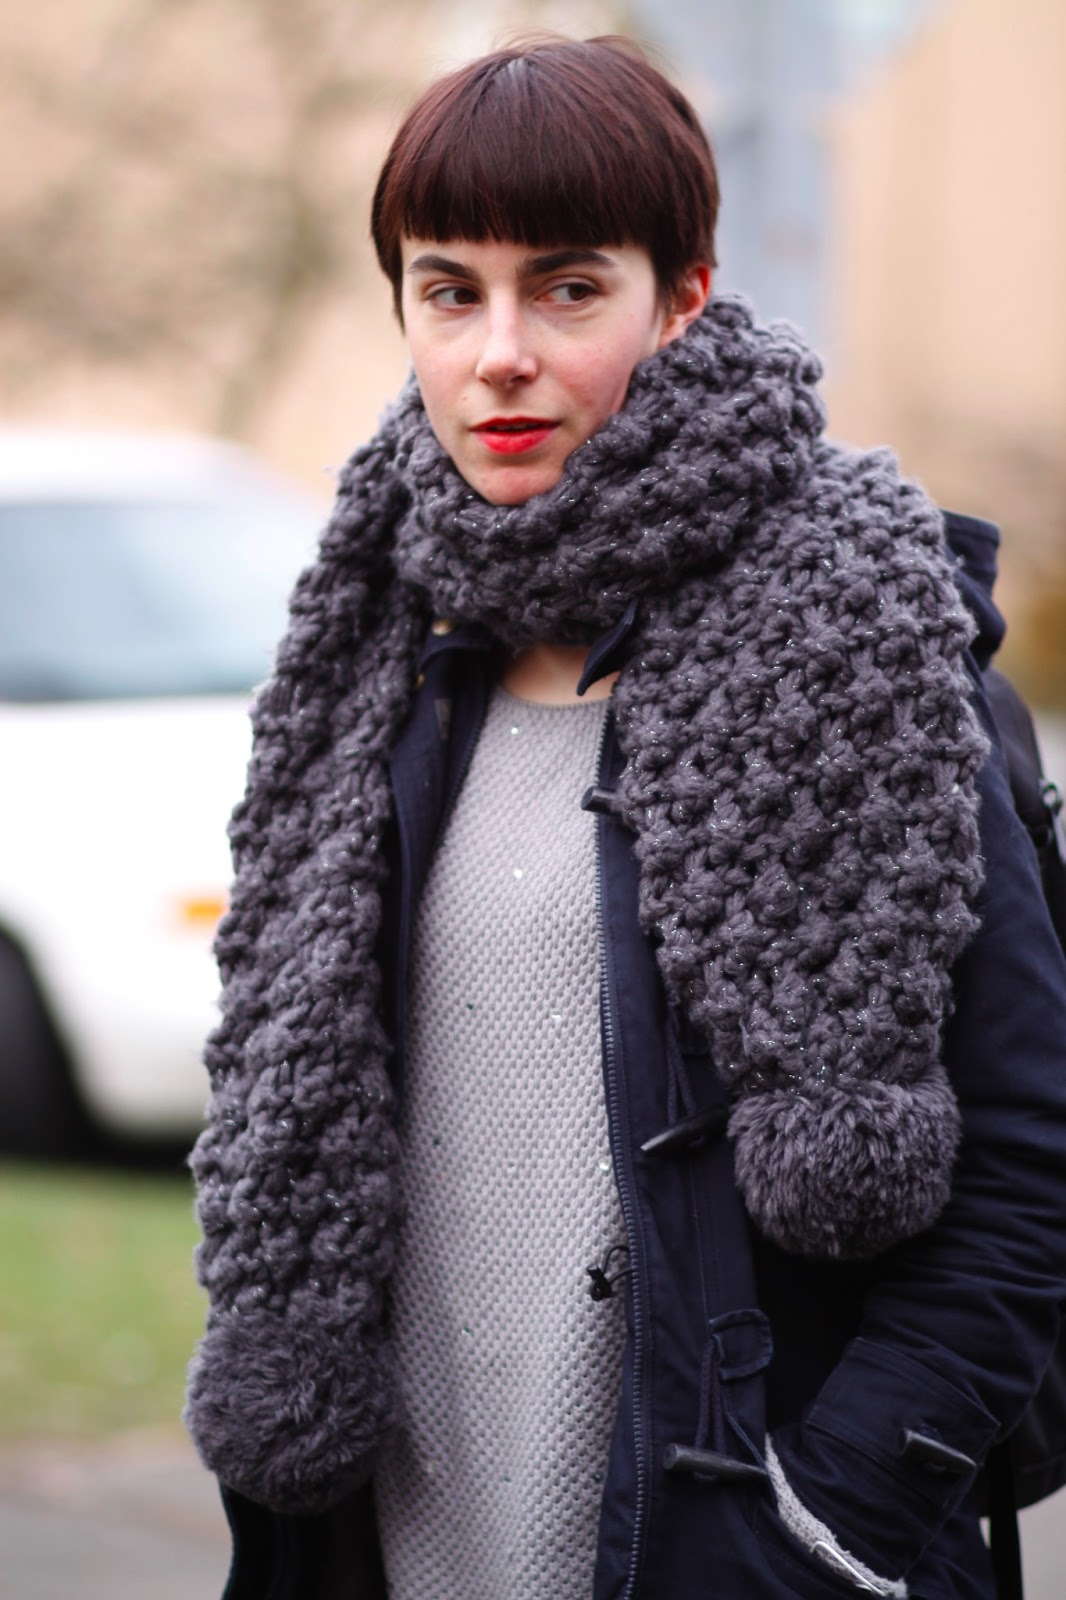 Scarf Knitting Styles : Hill style daria koshker it s my darlin